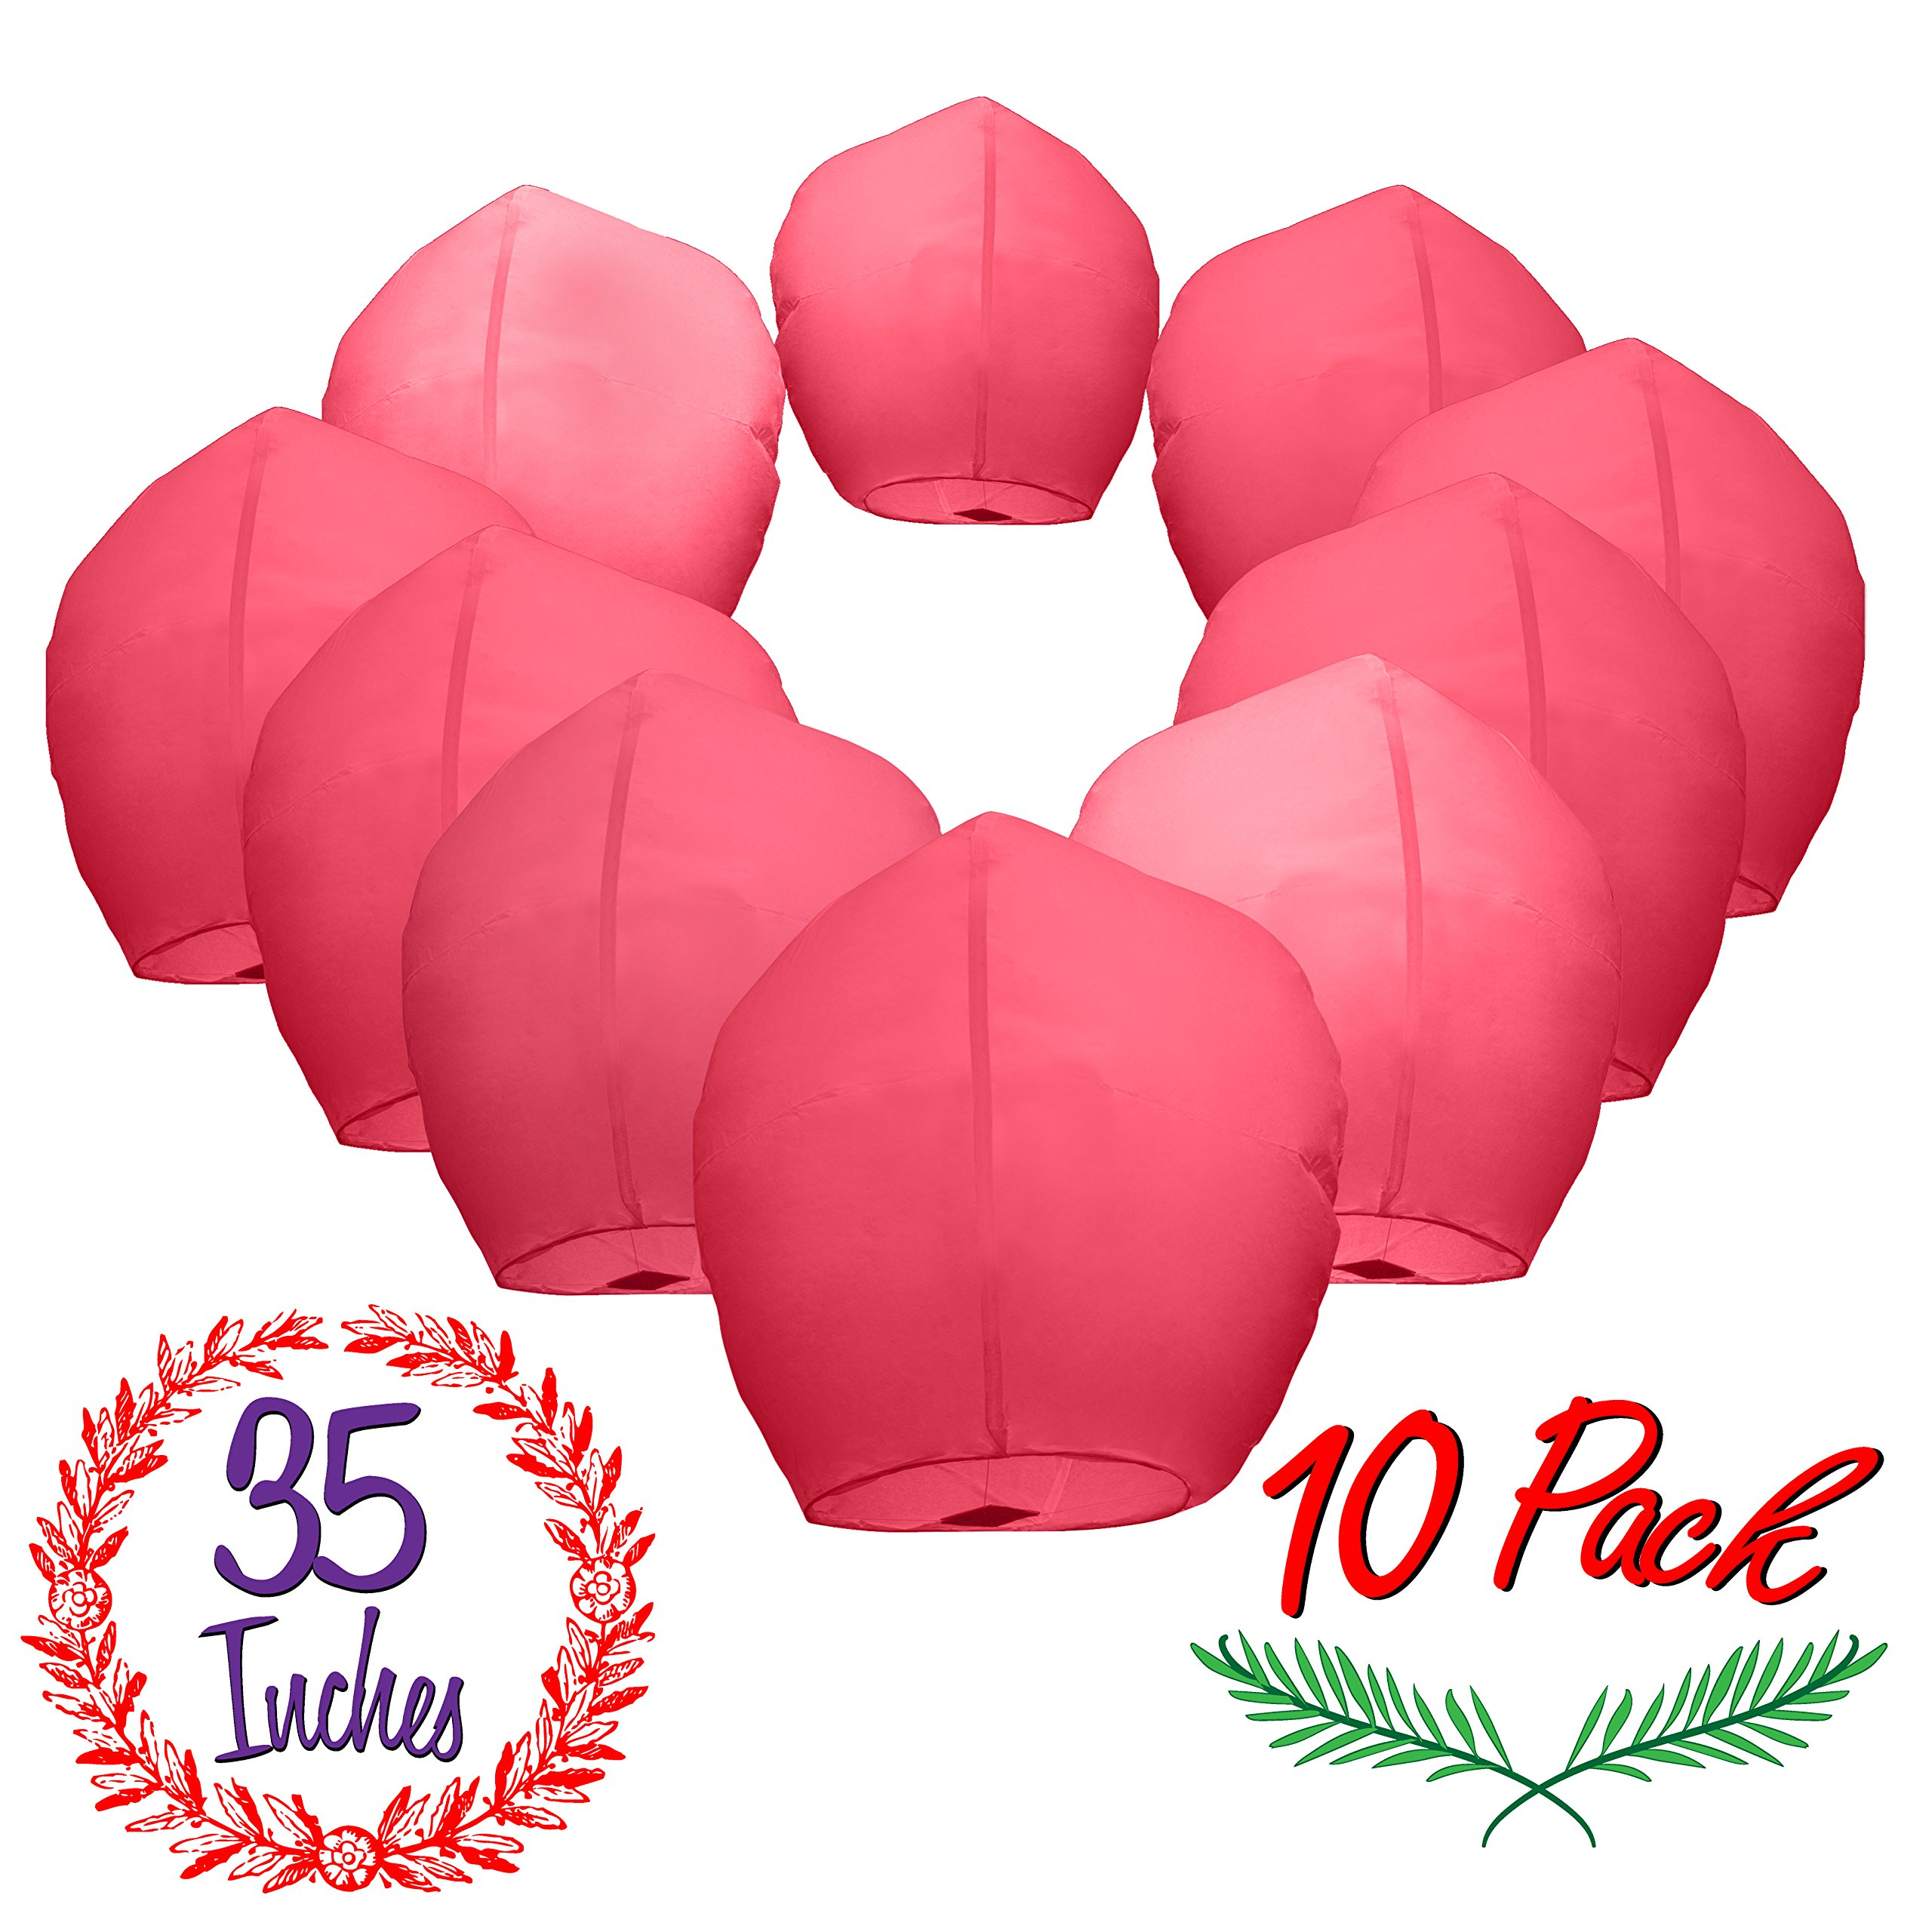 Chinese Sky Lanterns Paper (10) Red Pack - Ready to Use and Eco Friendly - Extra Large - 100% Biodegradable - Beautiful Sky Lantern for Parties, Chinese Festival, Memorials, New Year's, etc. by Gracie's Goods